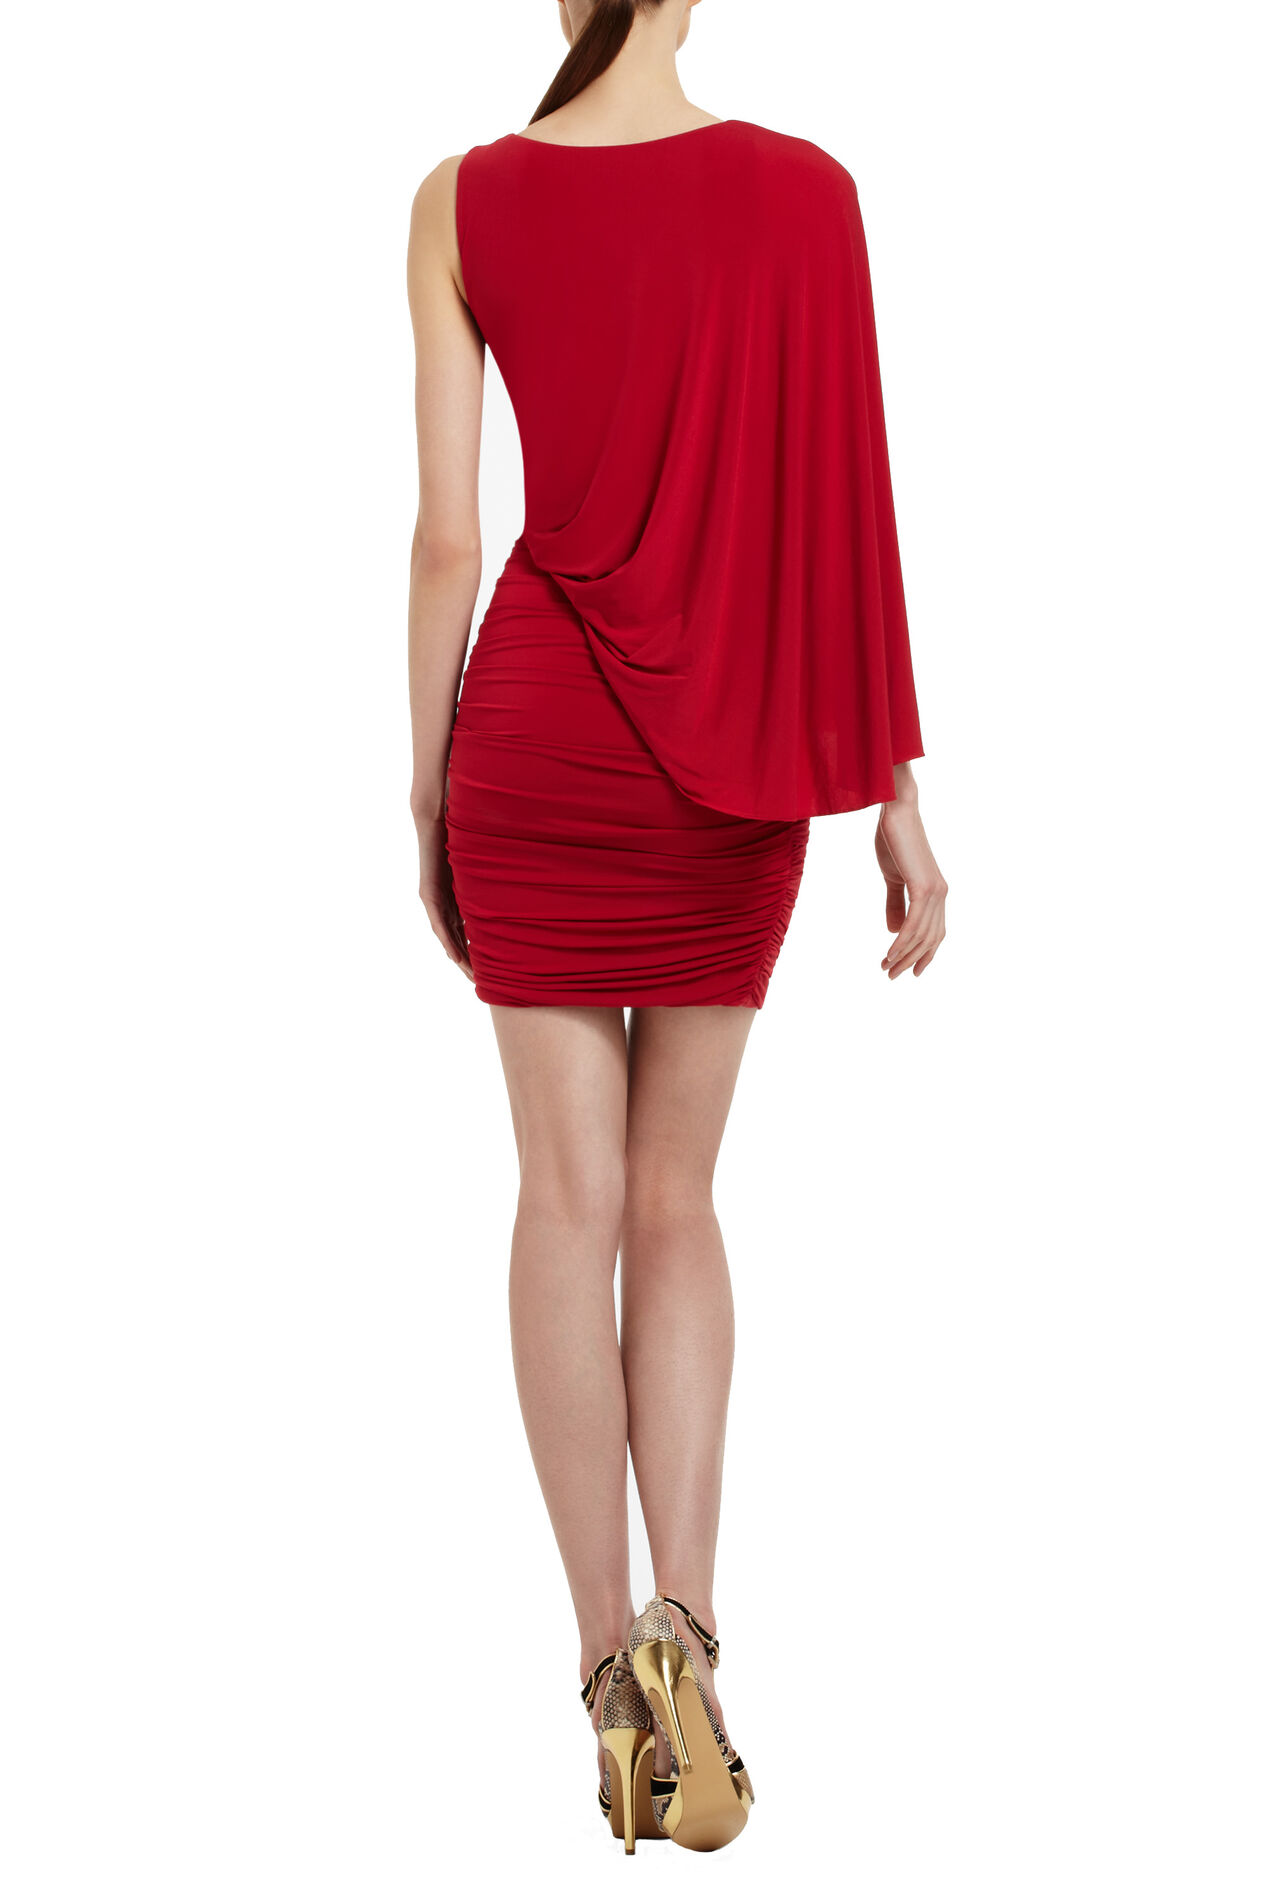 Venus Draped Dress